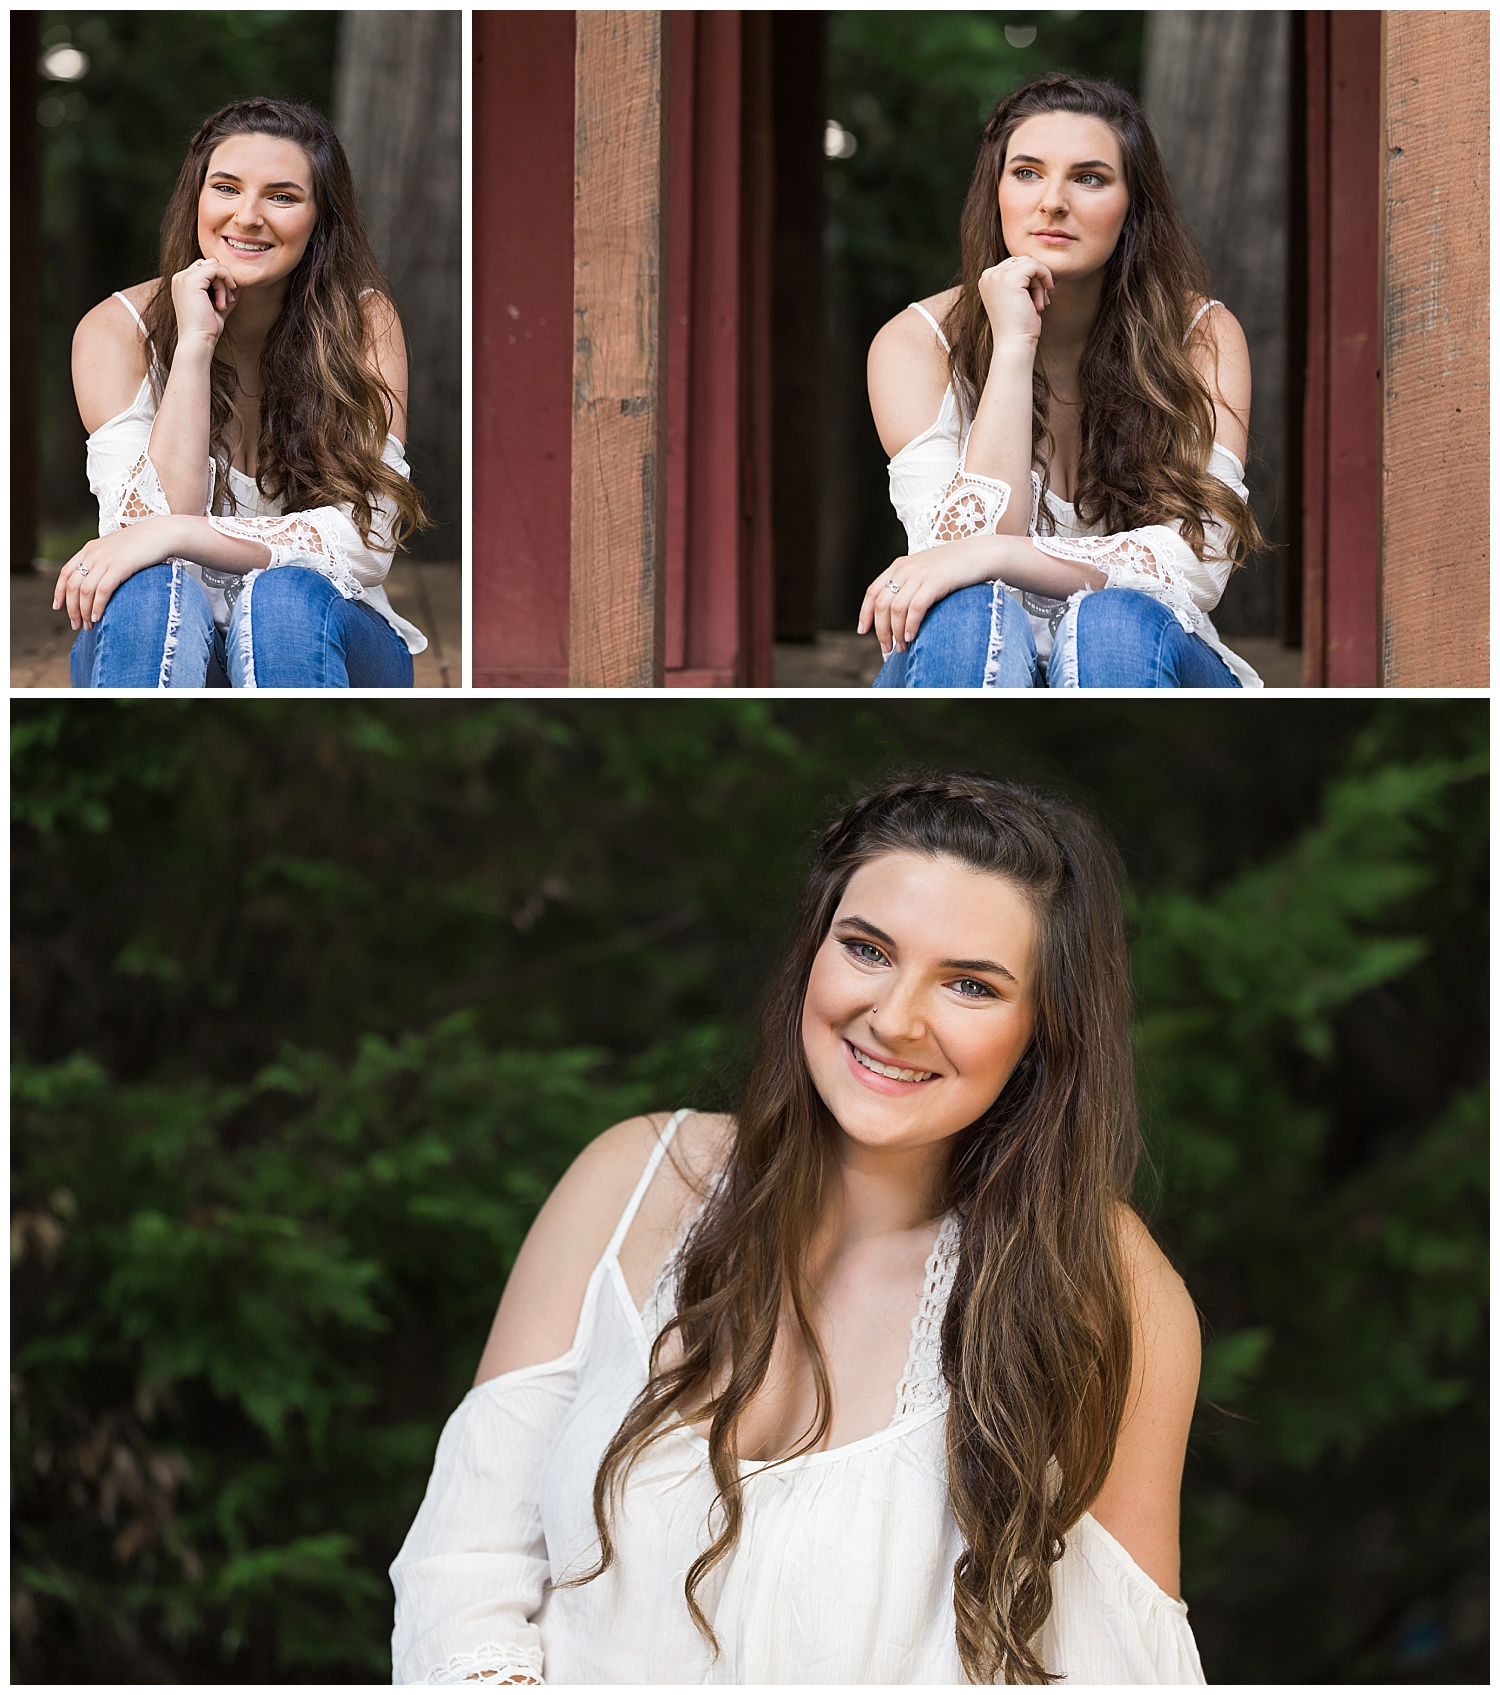 monkey park senior portraits lauren beesley photography